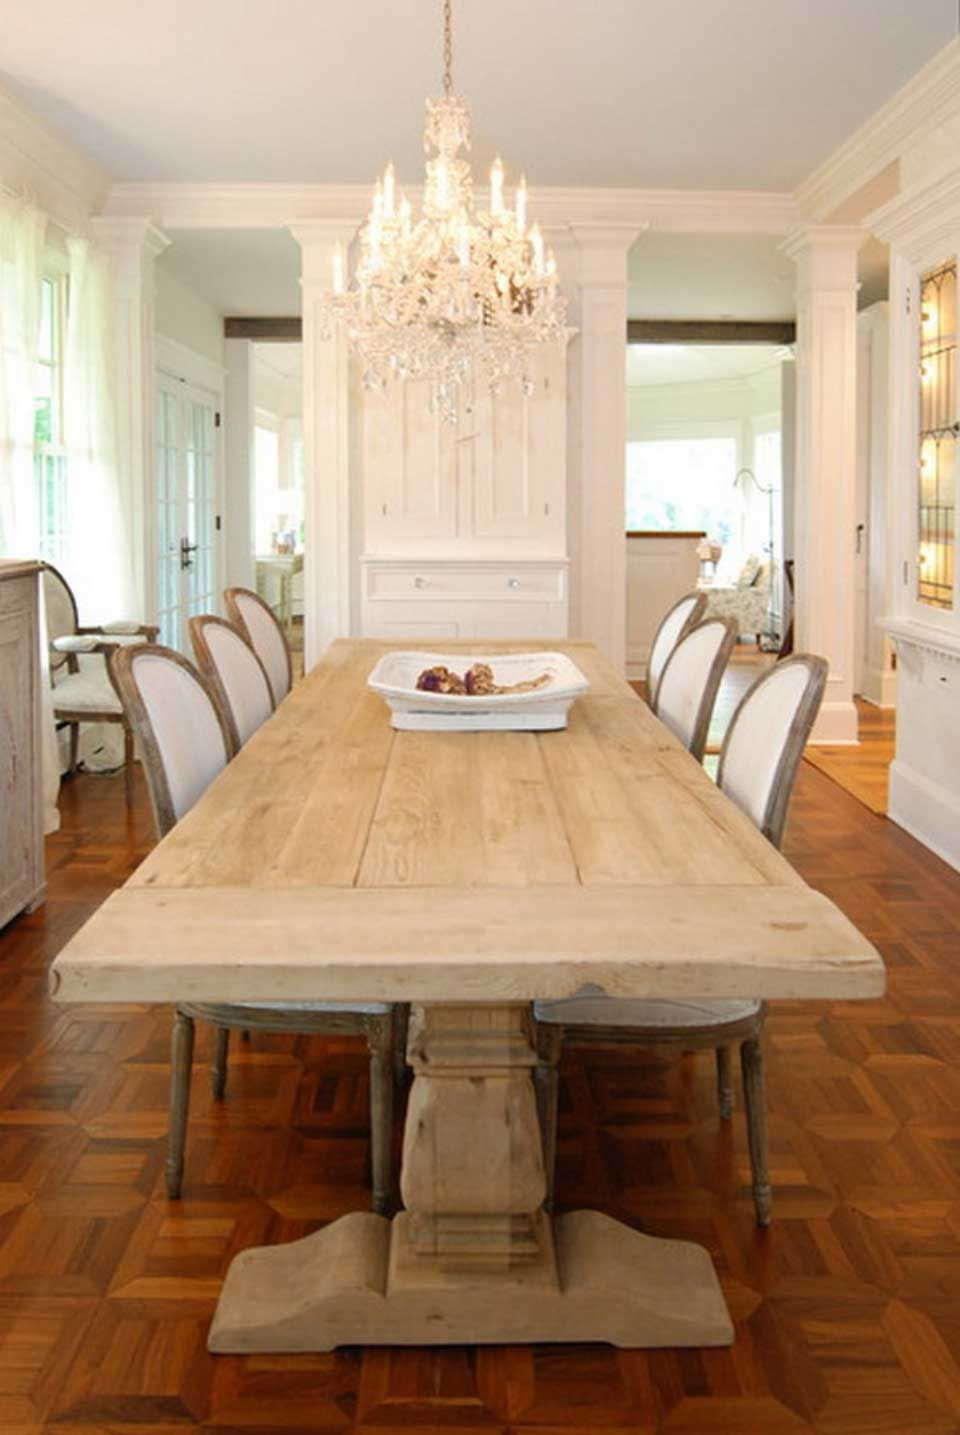 Rustic Dining Room Ideas For Small